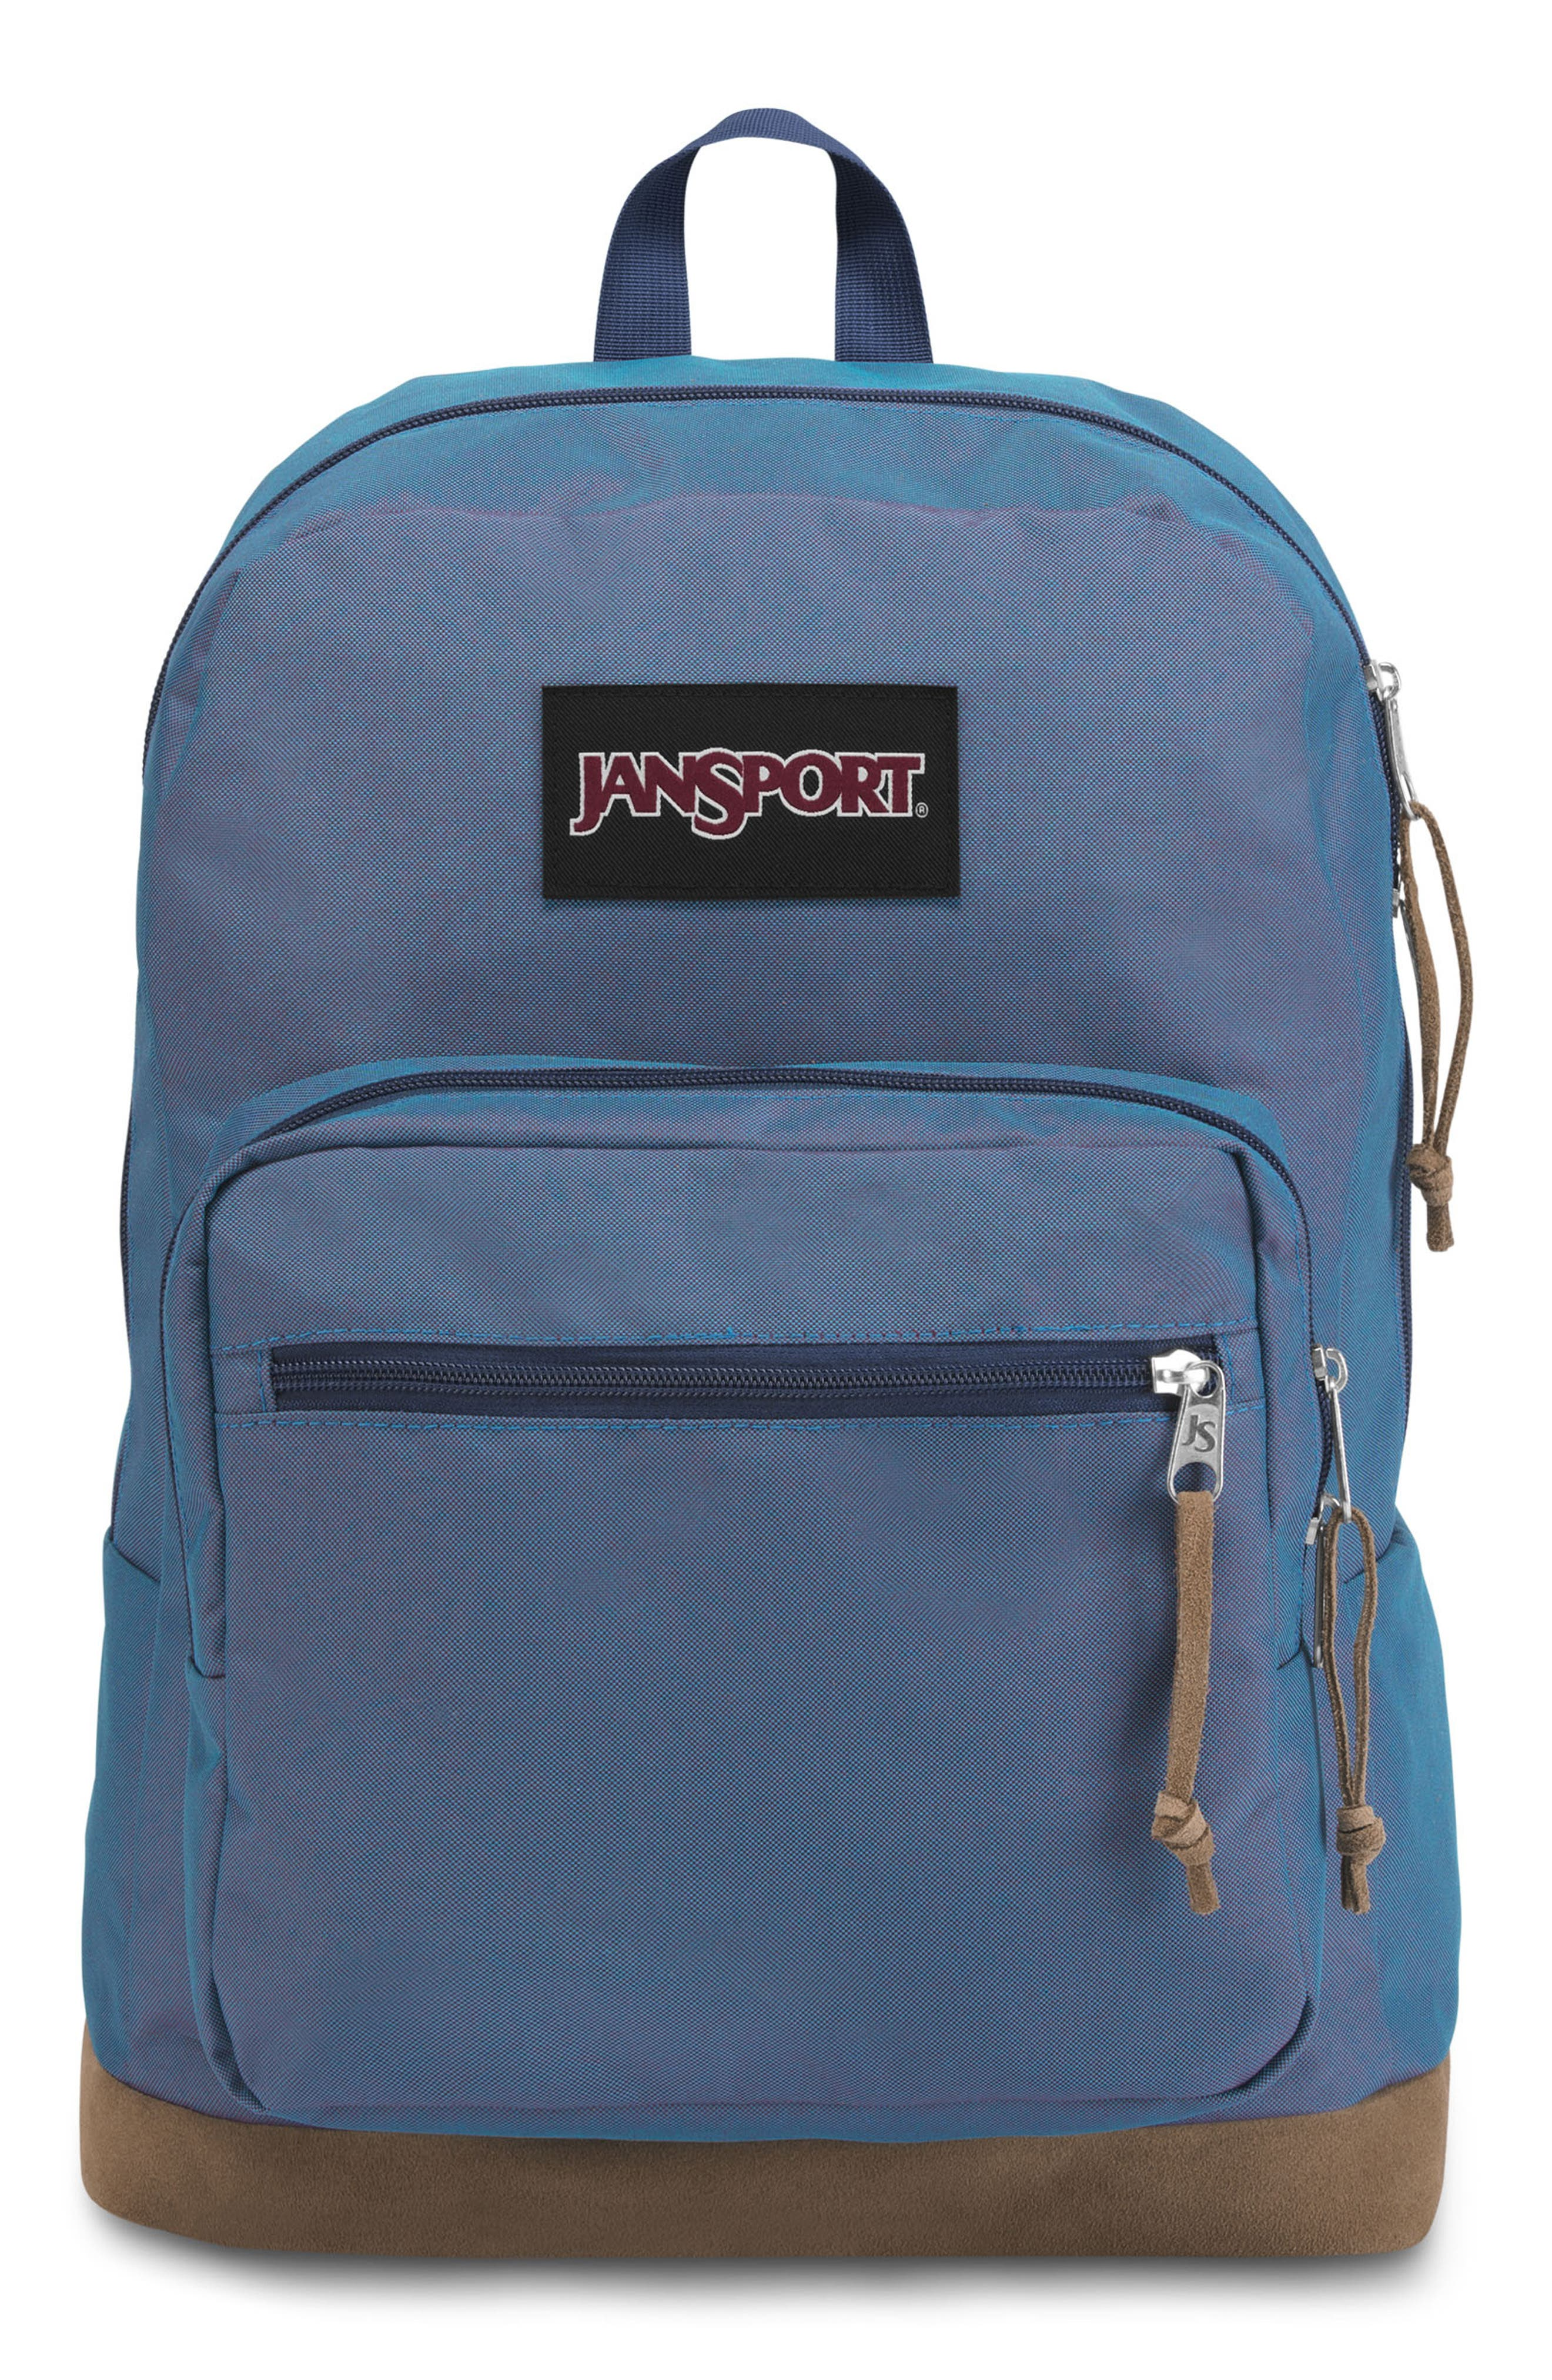 JANSPORT Right Pack Digital Edition Backpack - Blue in Blue Jay Yarn Dye